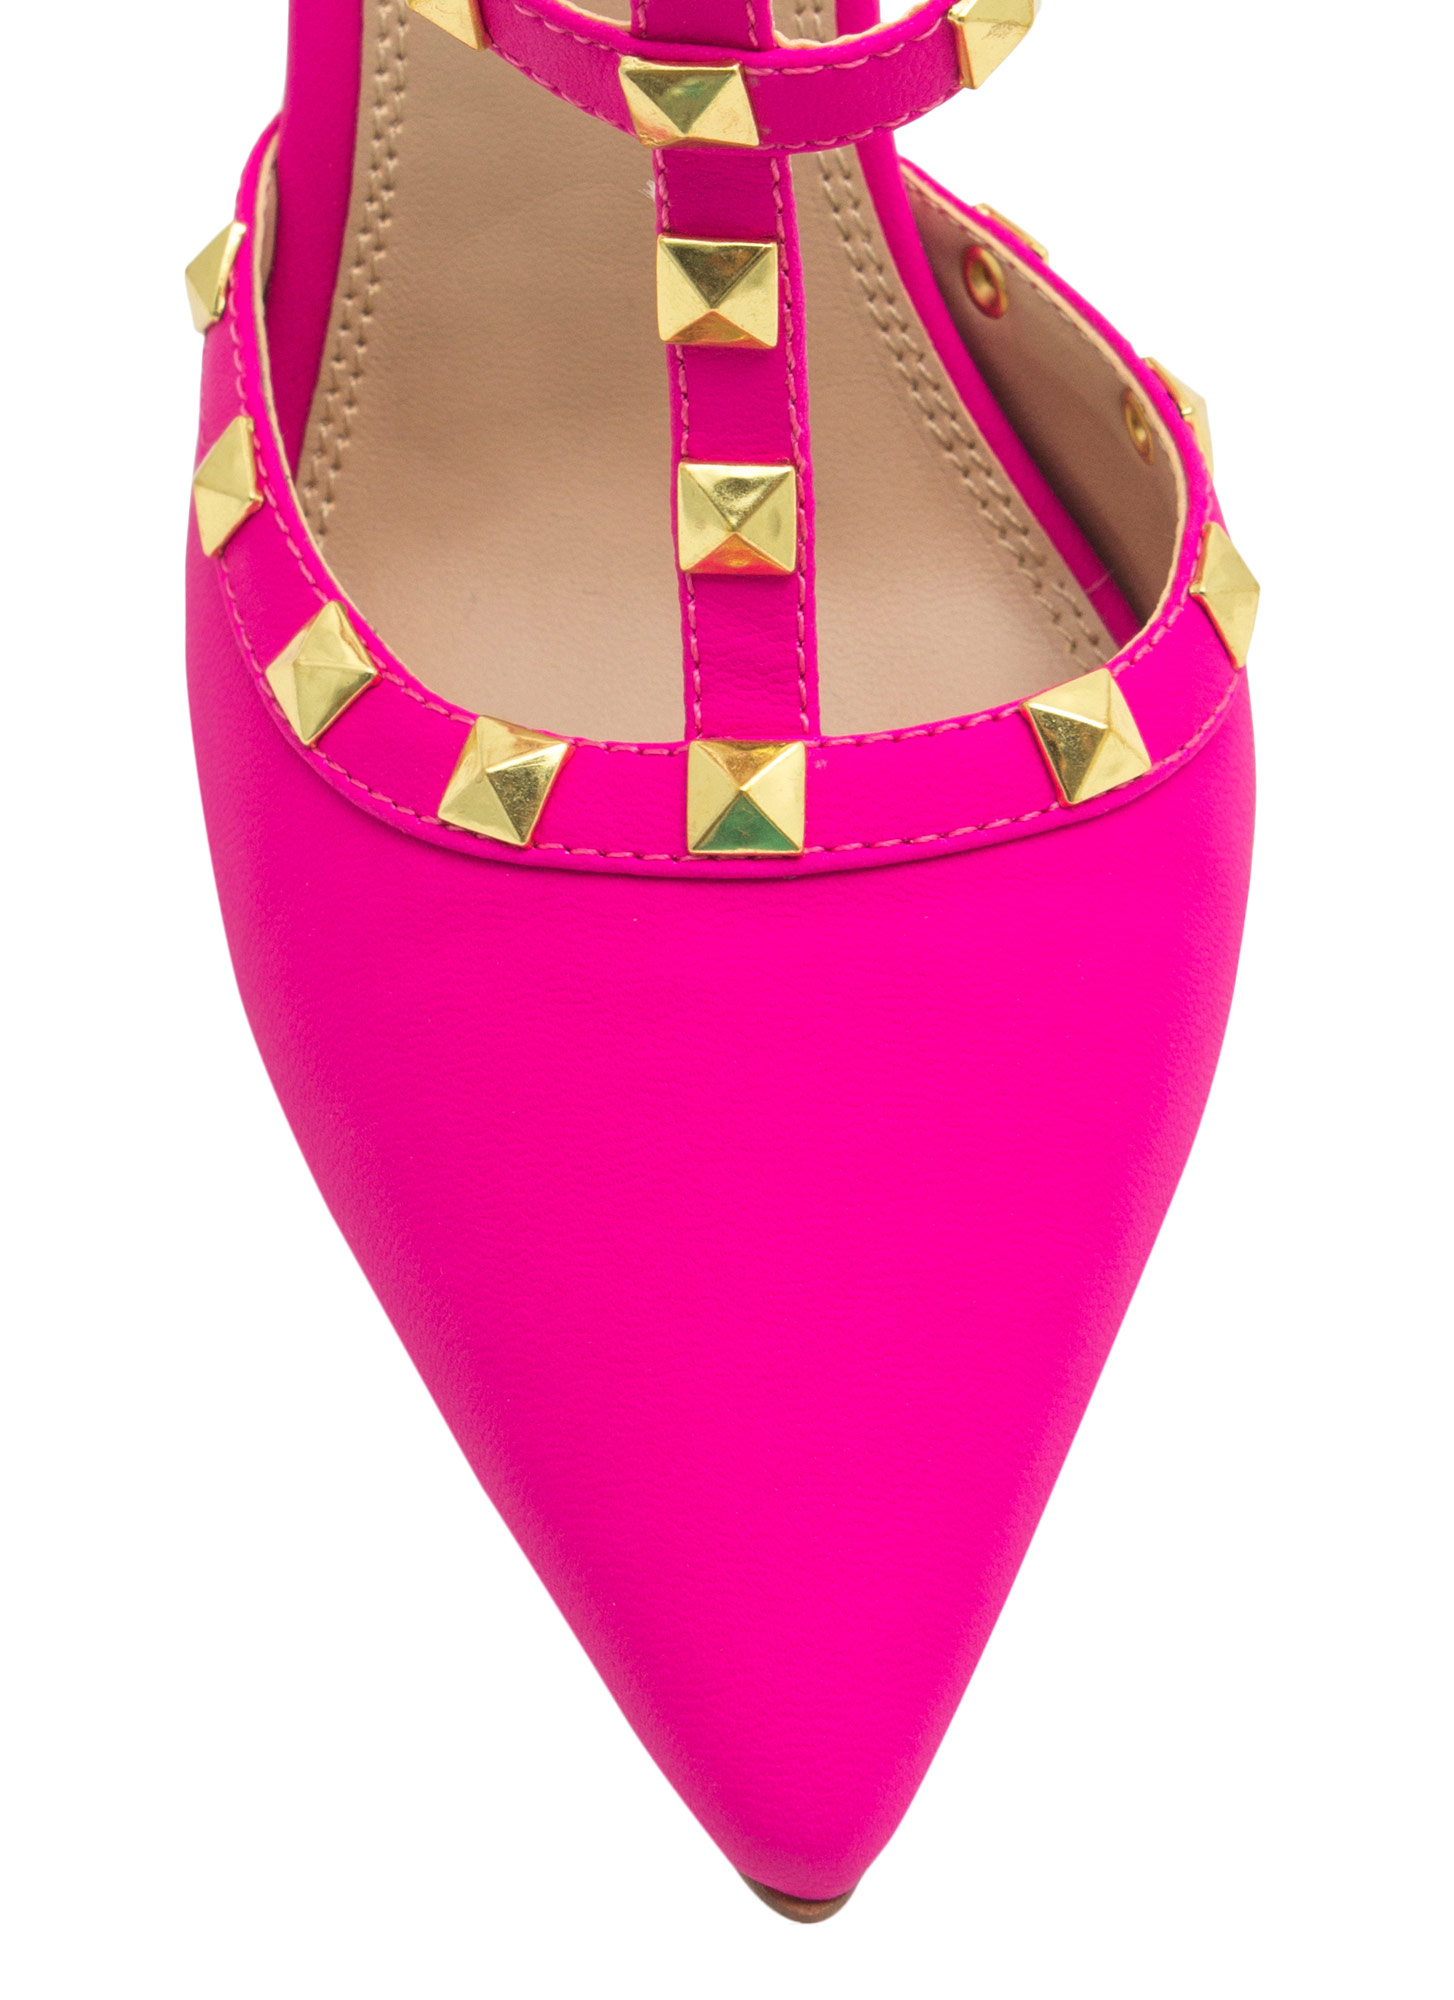 Ur A Stud Double T-Strap Heels HOTPINK